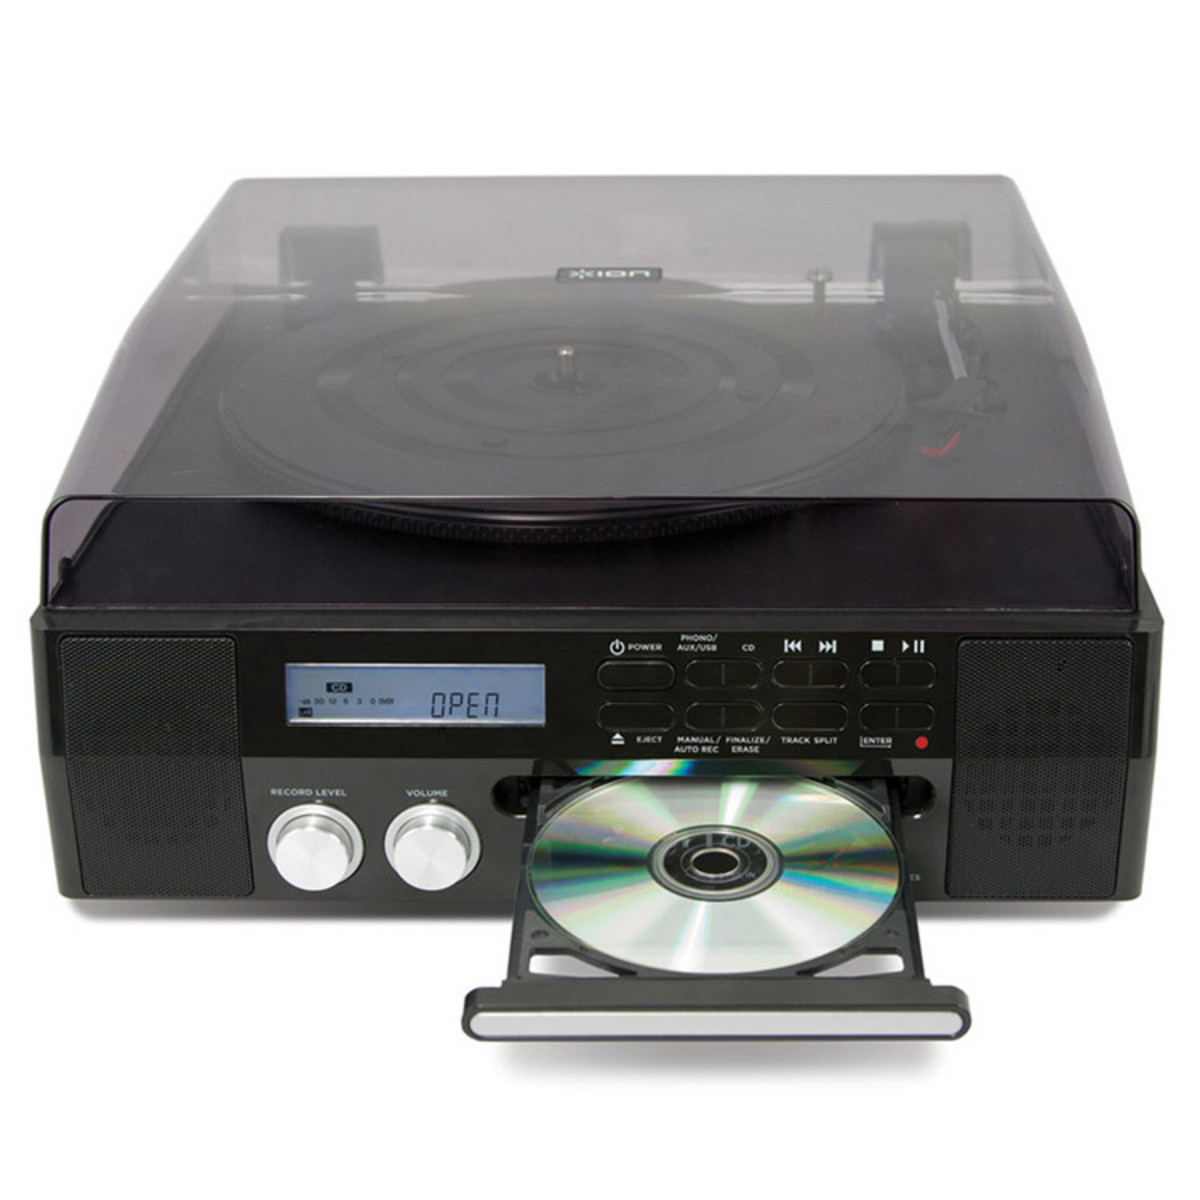 ION CD Direct Digital Turntable With Built-In CD Recorder